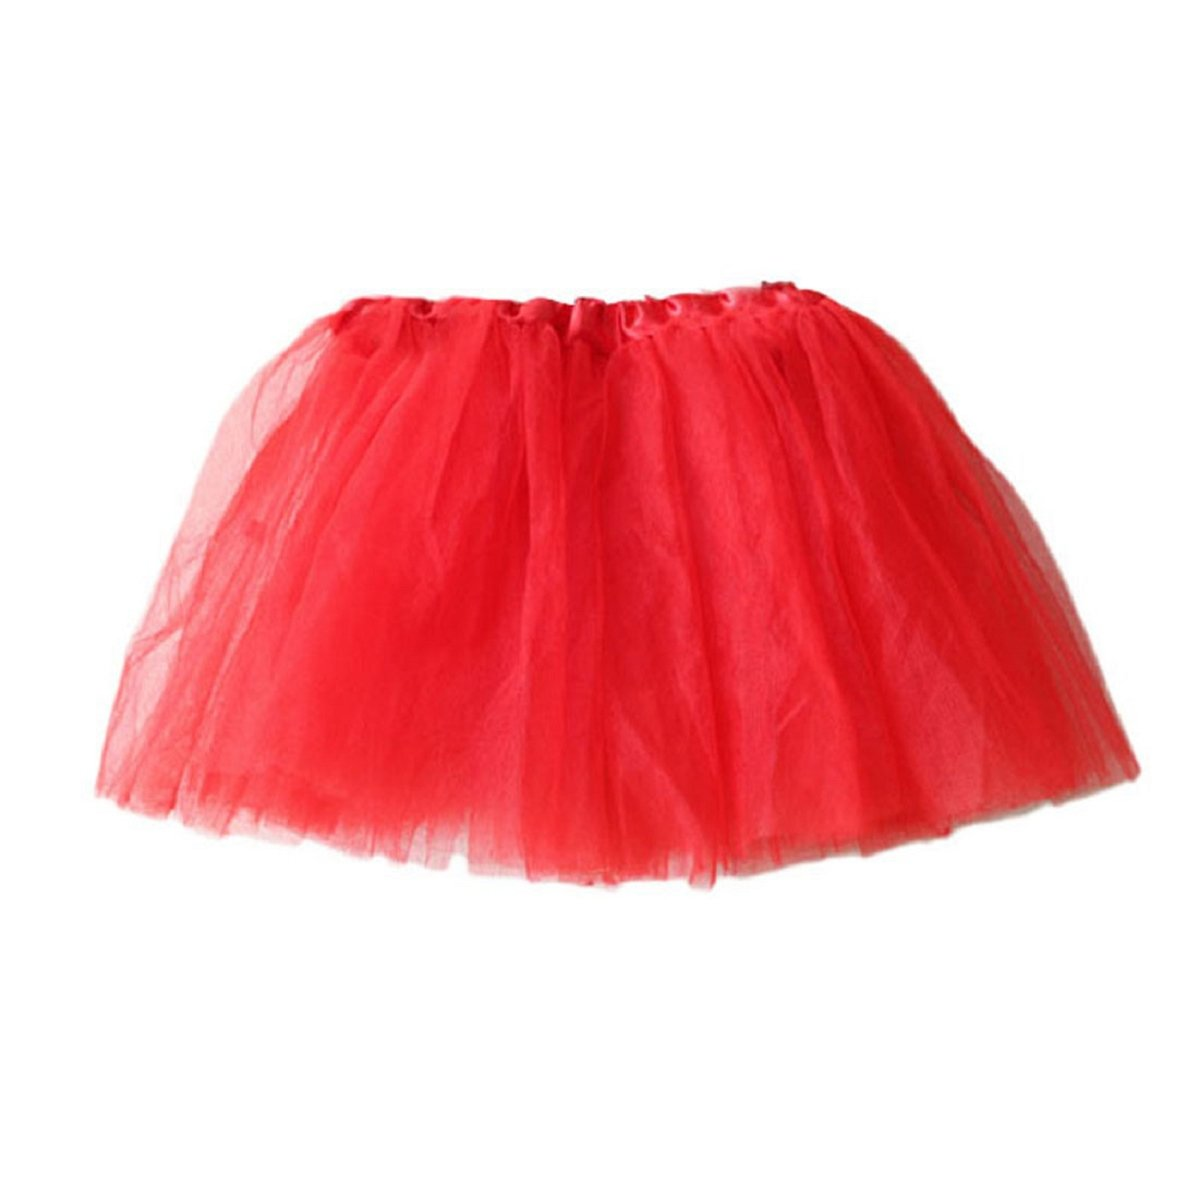 Doinshop 2015 Girl Princess Mini Dress Pettiskirt Party Ballet Tutu Skirt